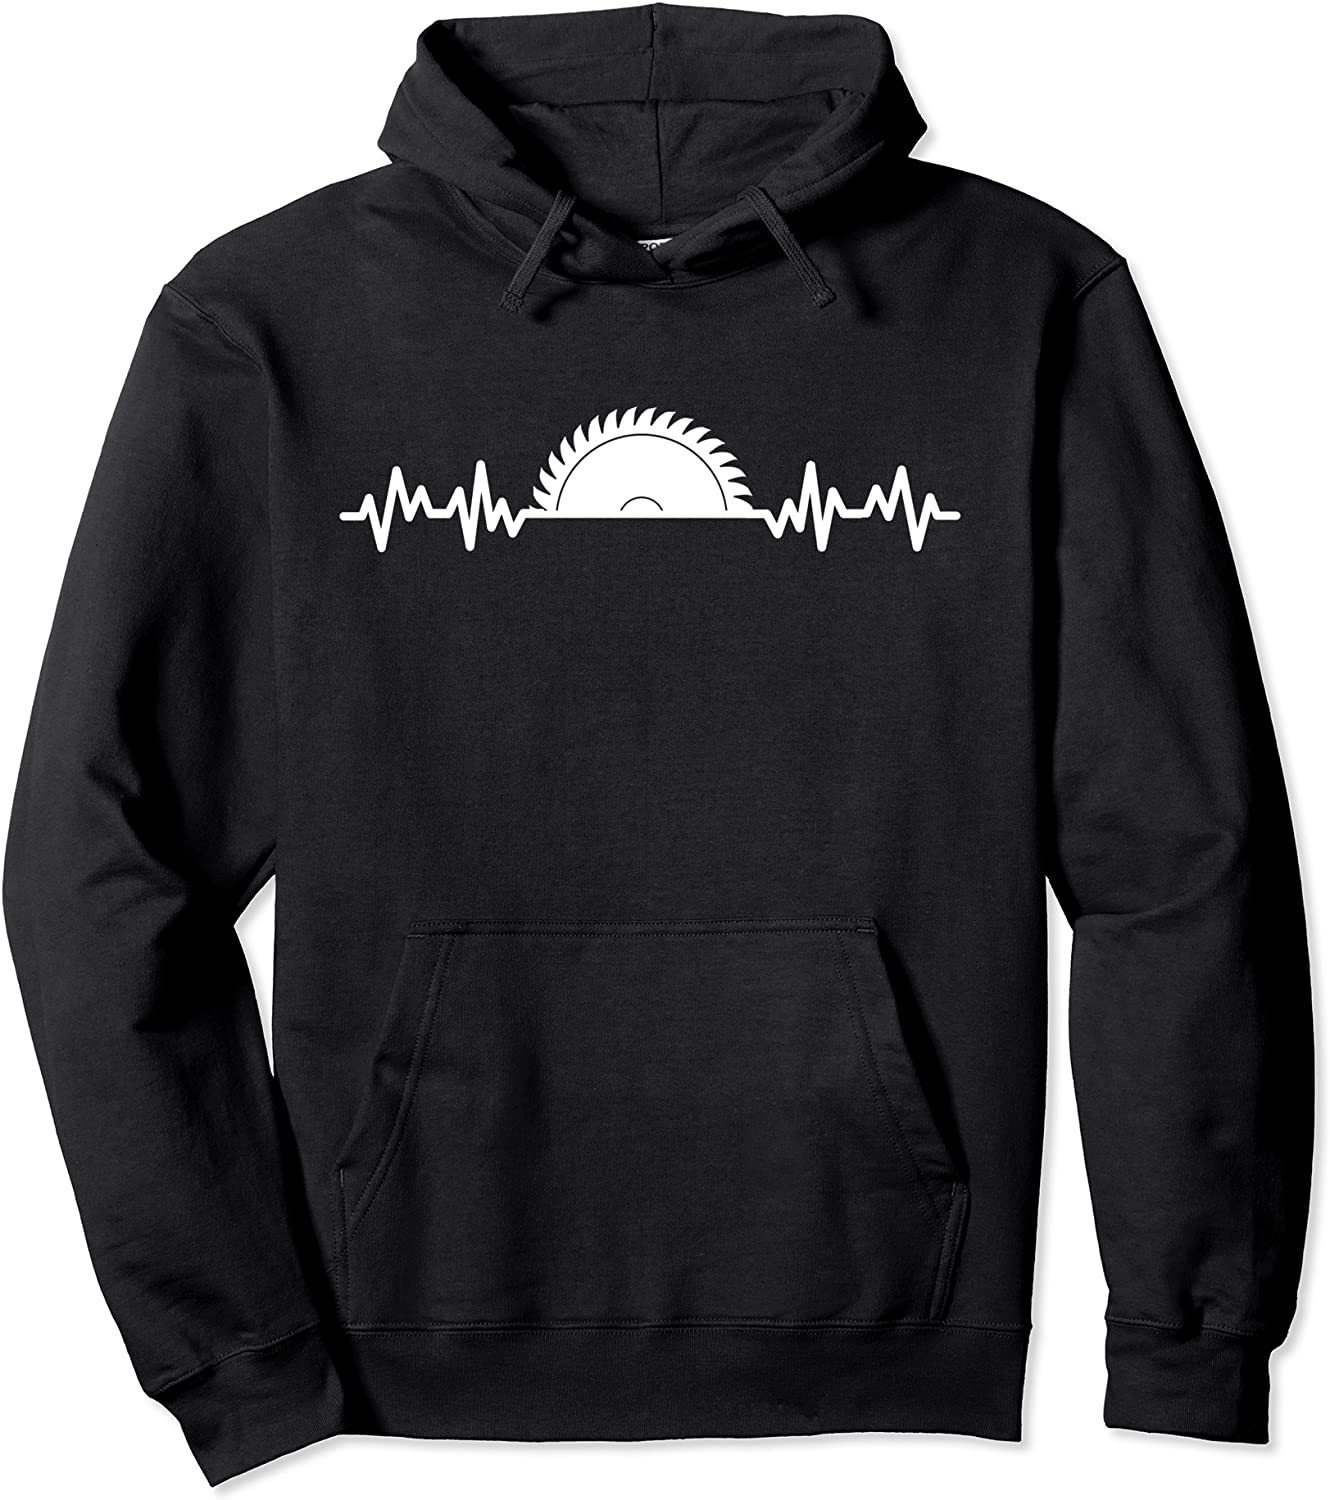 Carpenter Woodworking お得セット Saw Pullover Heartbeat 在庫一掃売り切りセール Hoodie